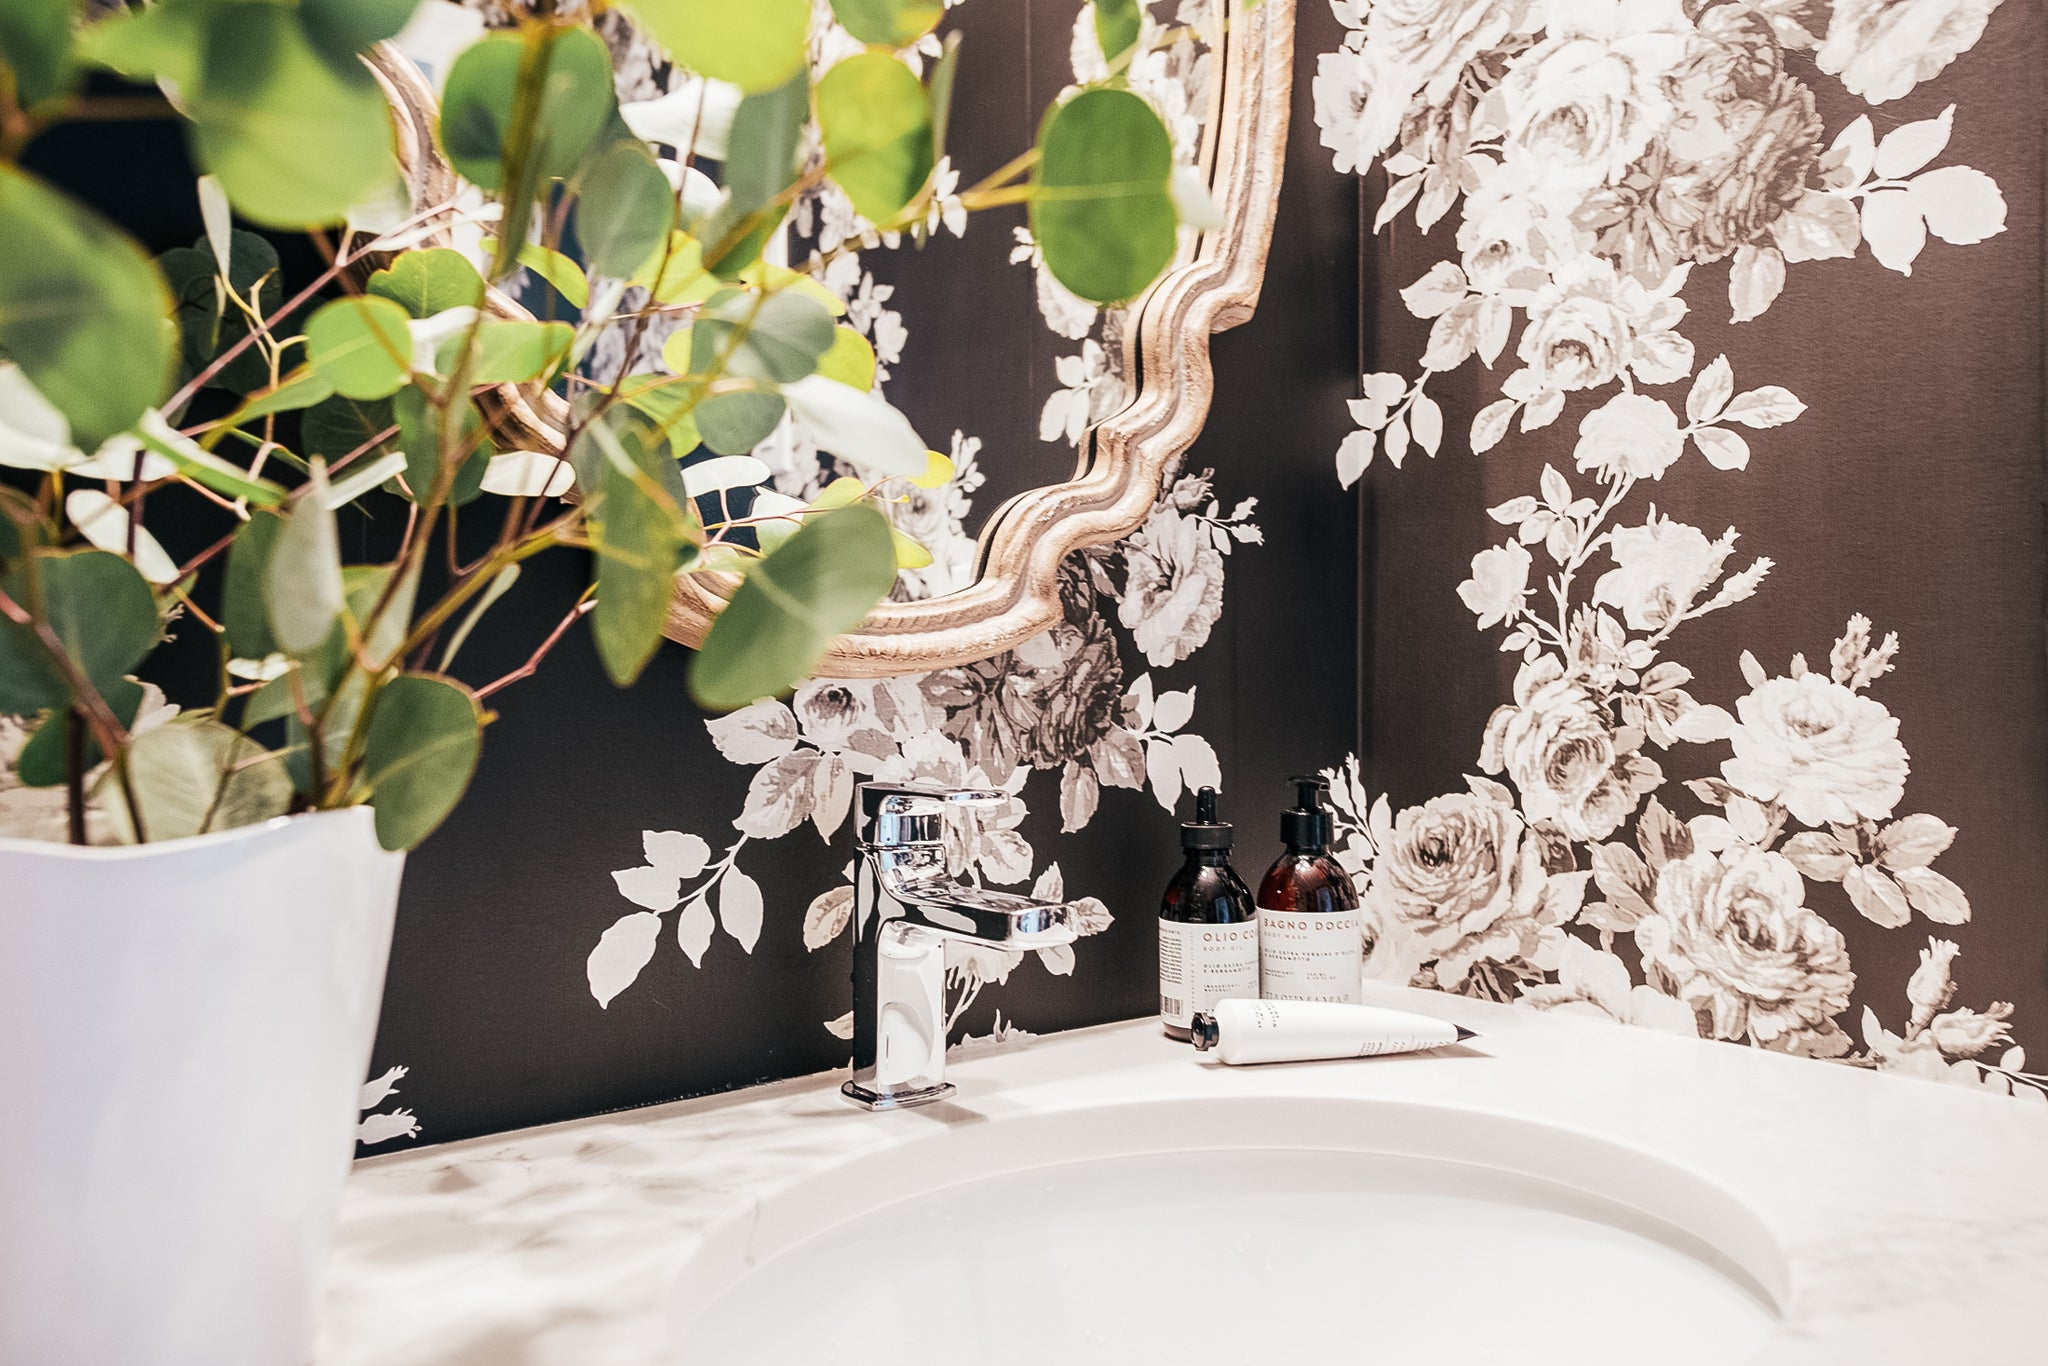 Rosewood condo bathroom sink and floral wallpaper.